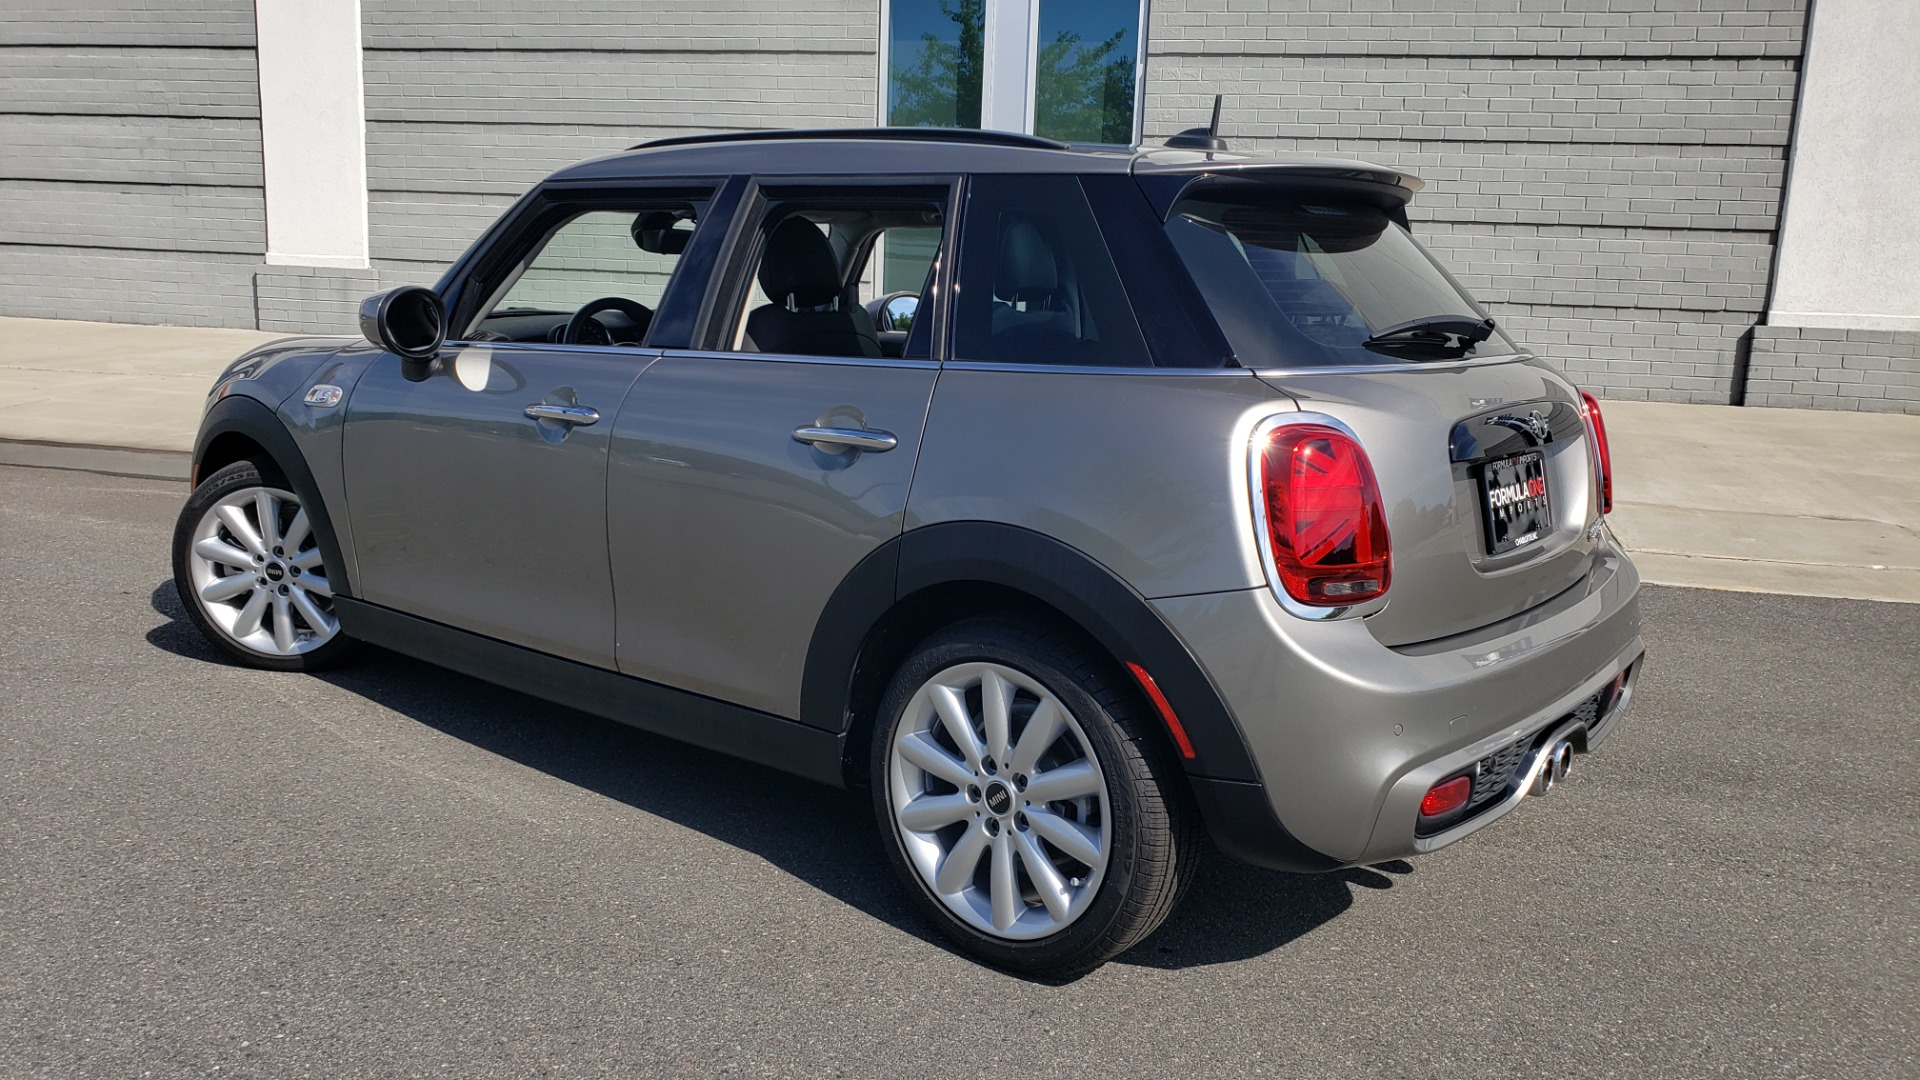 Used 2020 MINI HARDTOP 4 DOOR COOPER S / NAV / SUNROOF / AUTO / H/K SND / REARVIEW for sale $28,495 at Formula Imports in Charlotte NC 28227 11